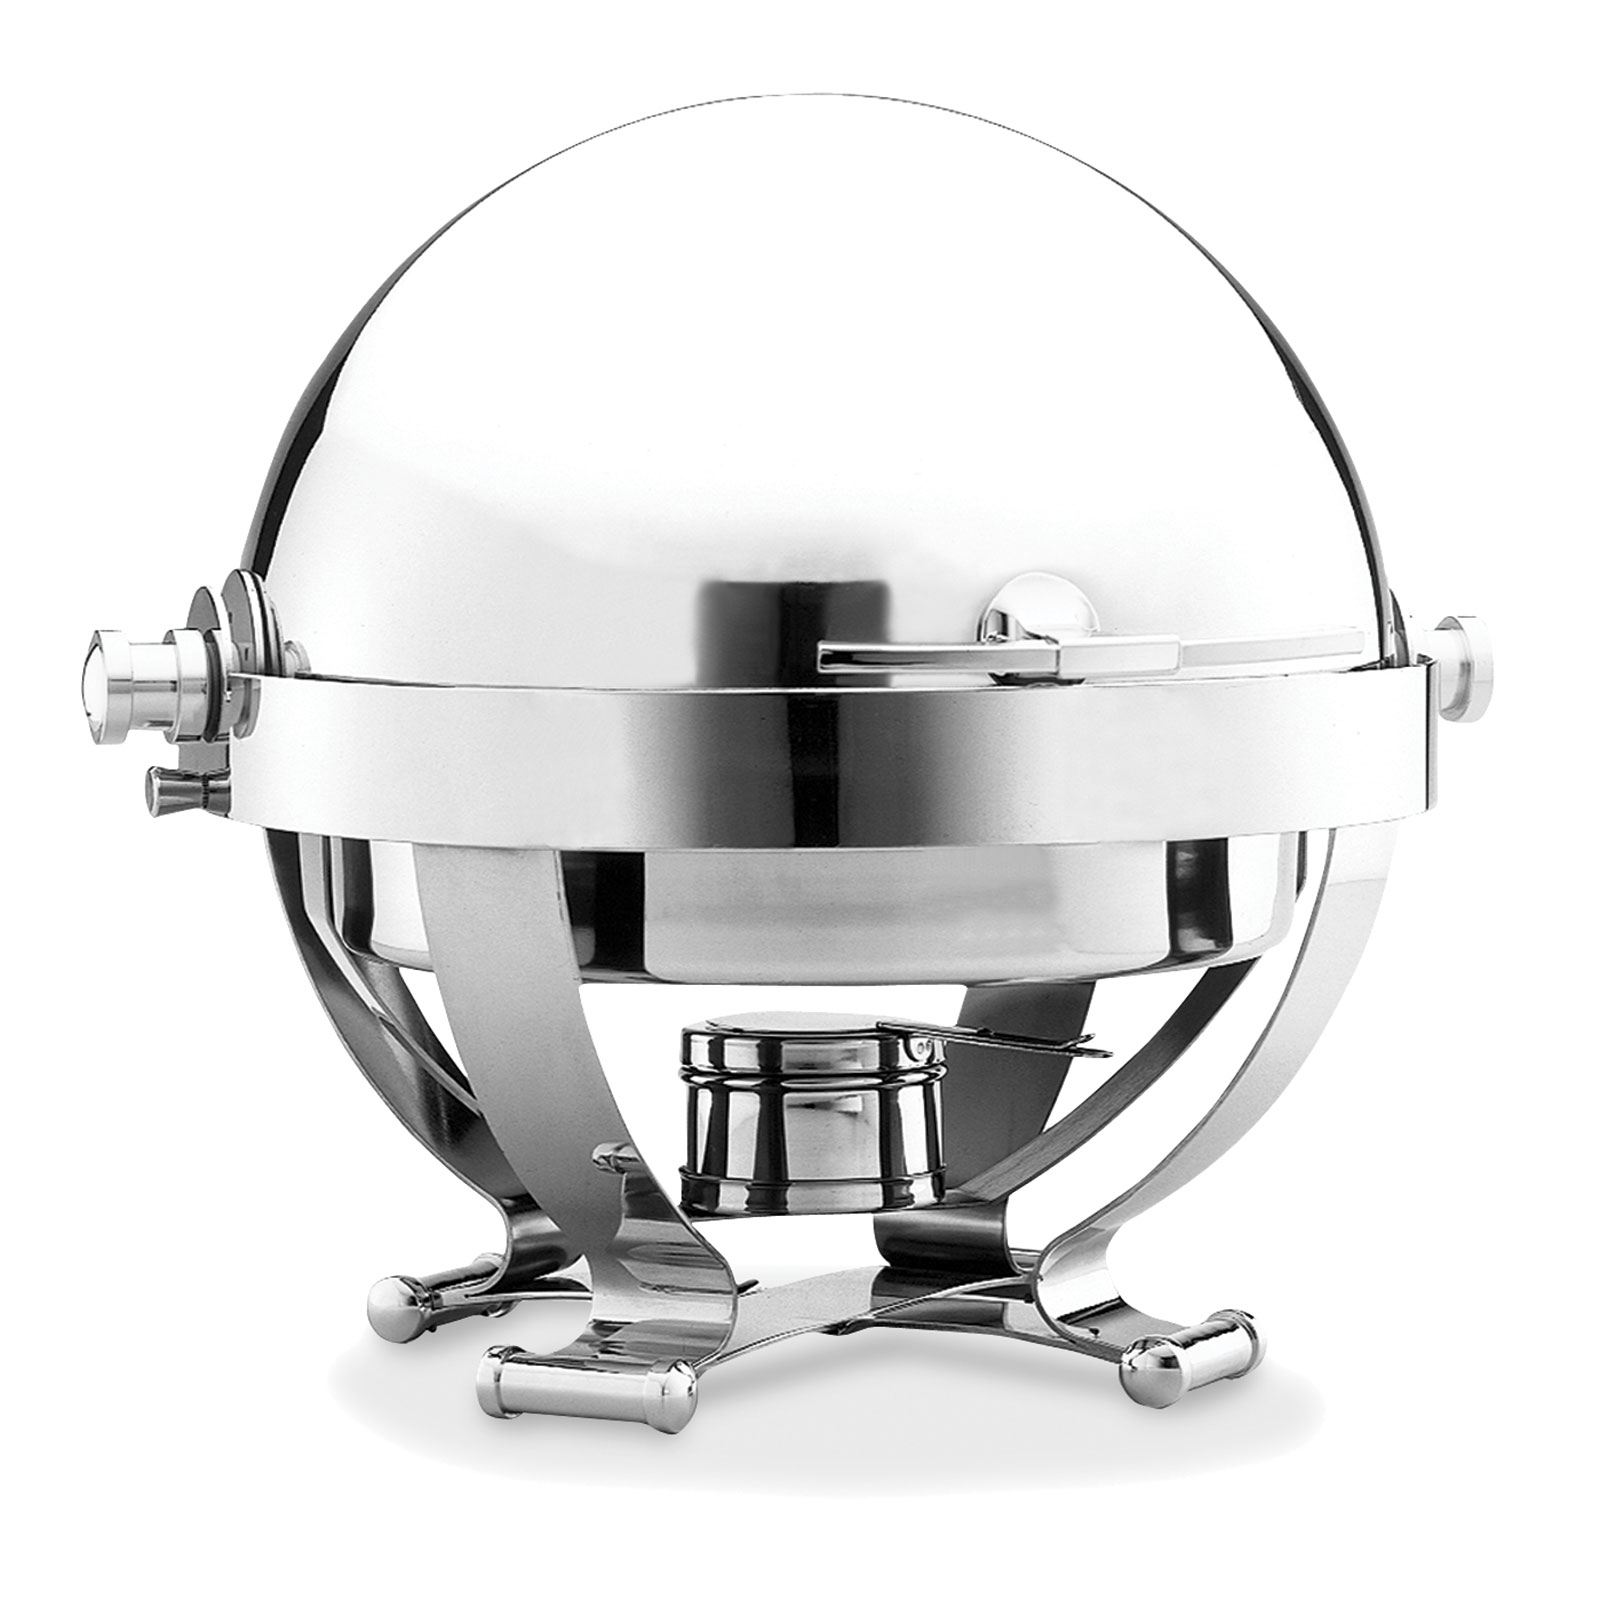 Walco Stainless 54130CR chafing dish